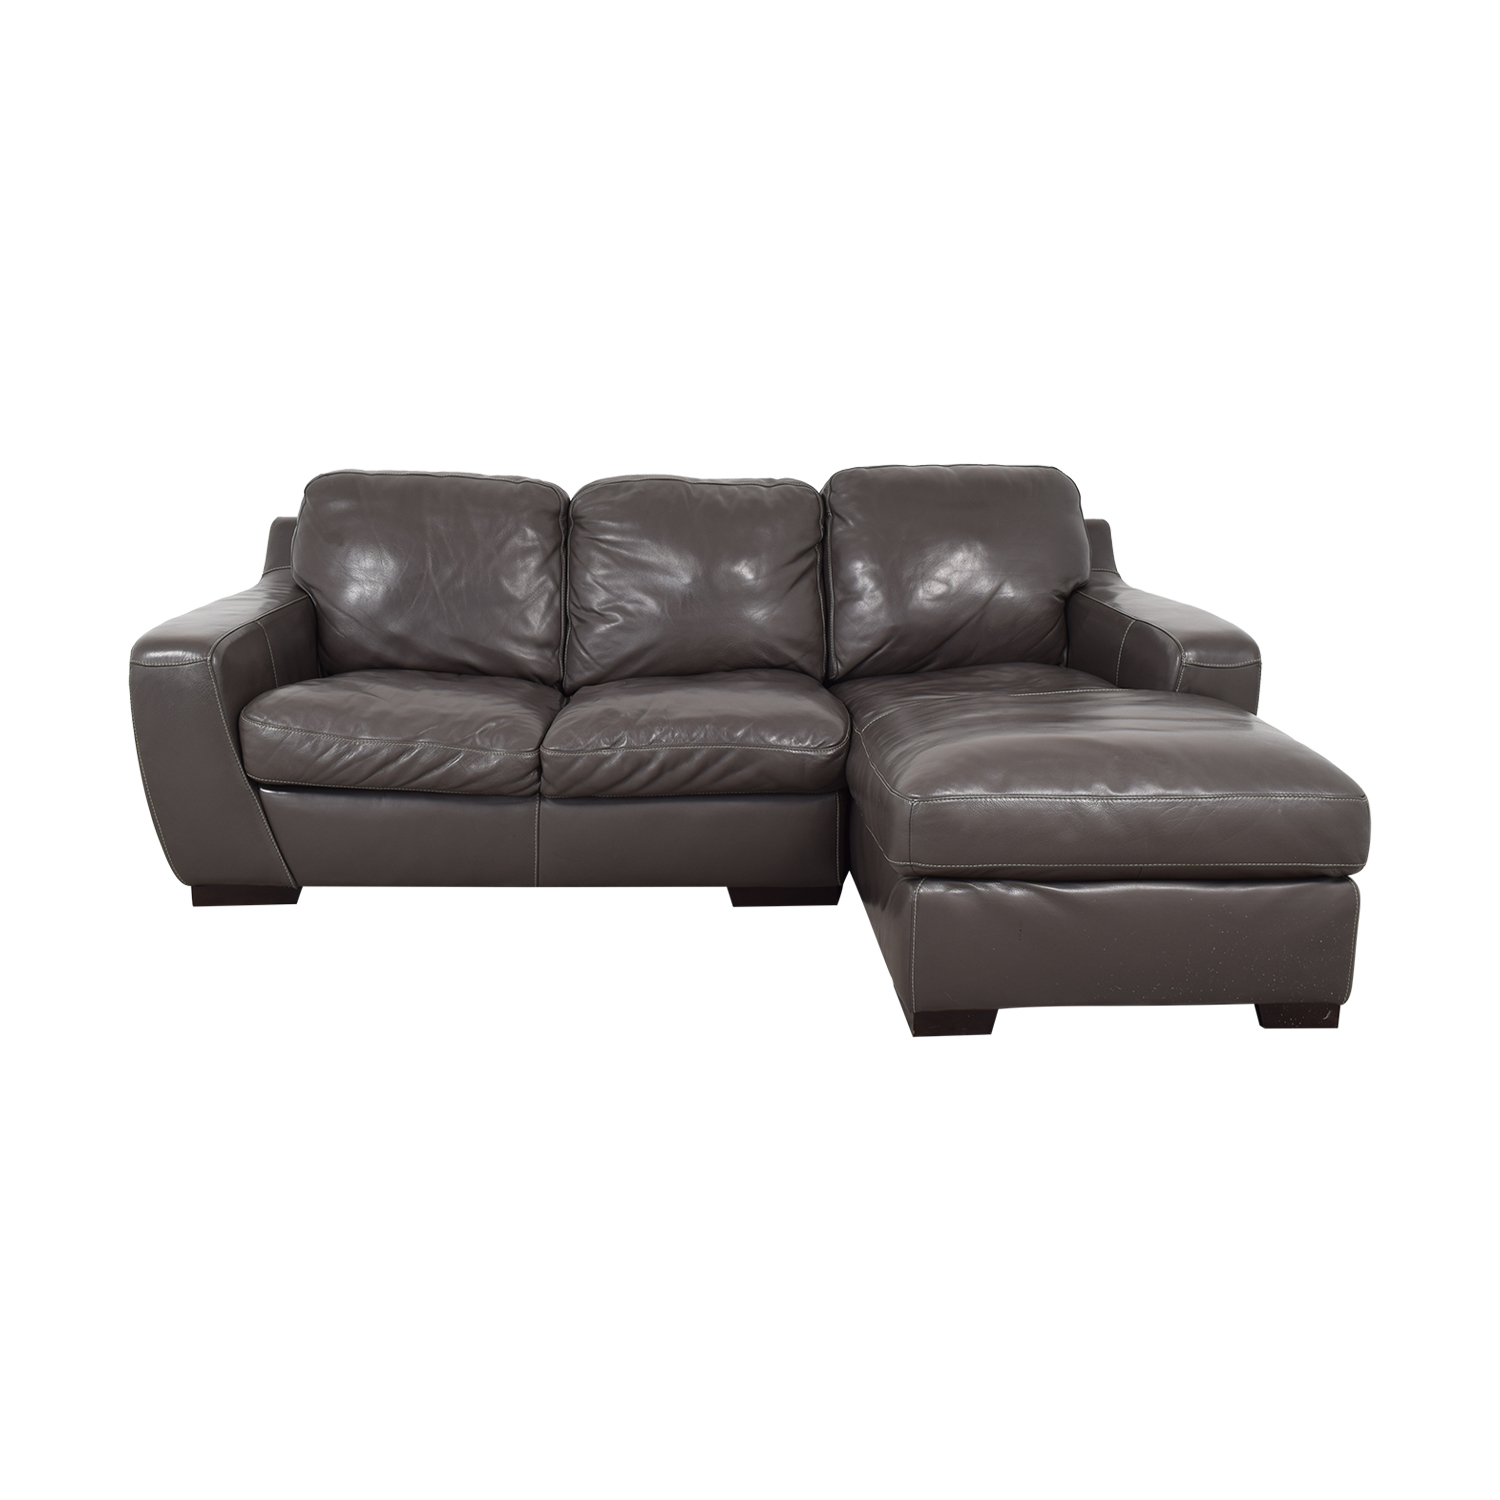 Raymour & Flanigan Stone Chaise Sectional Raymour & Flanigan